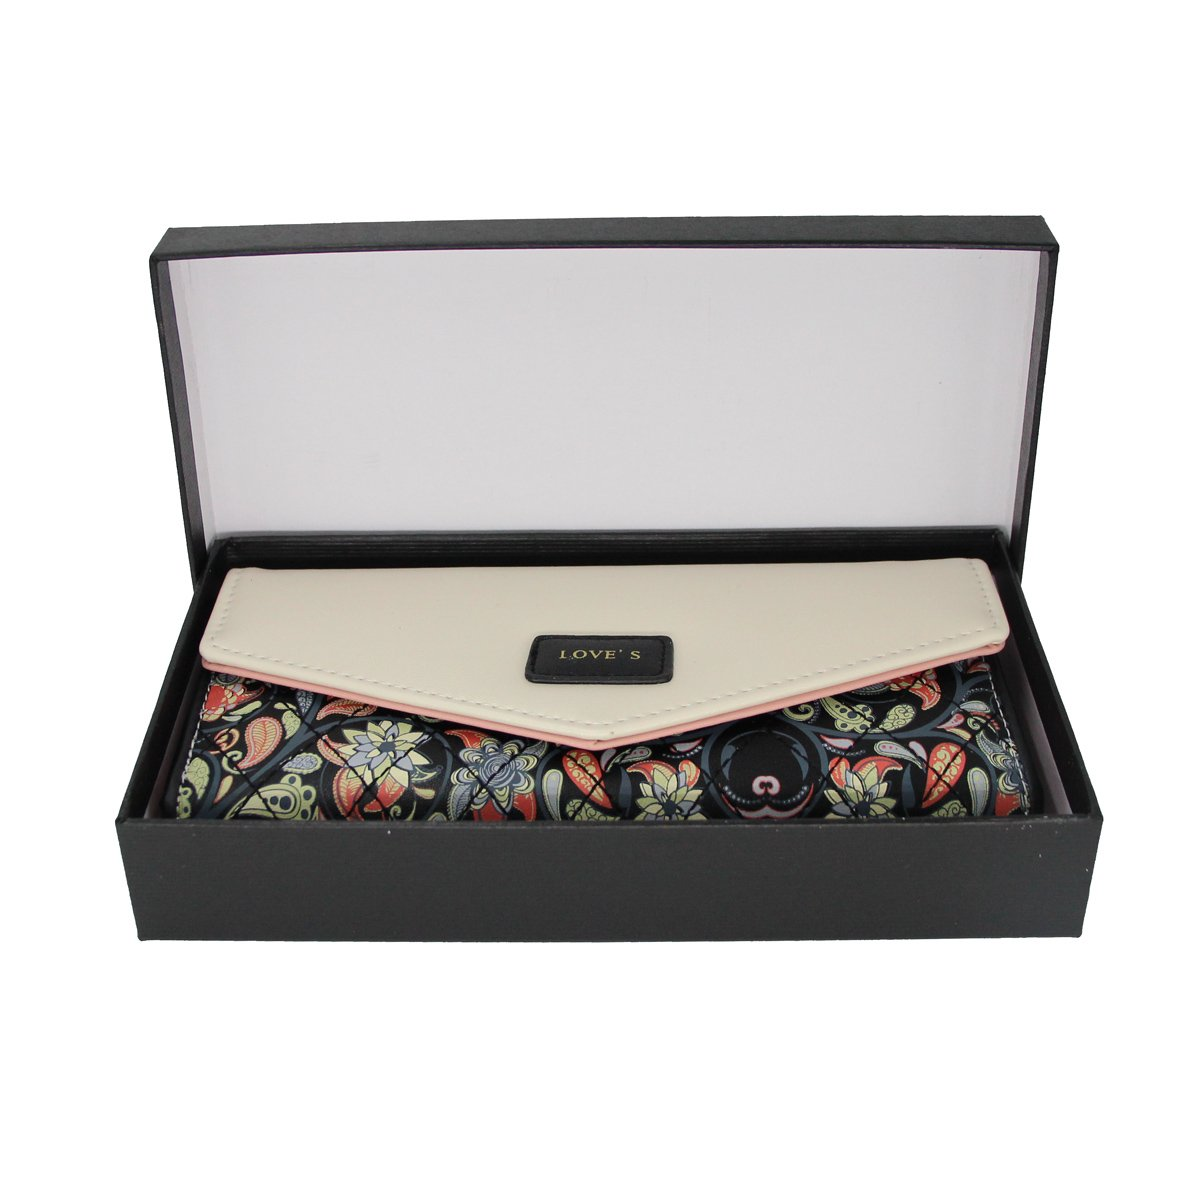 Womens Leather Wallet Purse Handbag Floral Money Clips Credit Card Case Holder by Uopen Endy (Image #7)